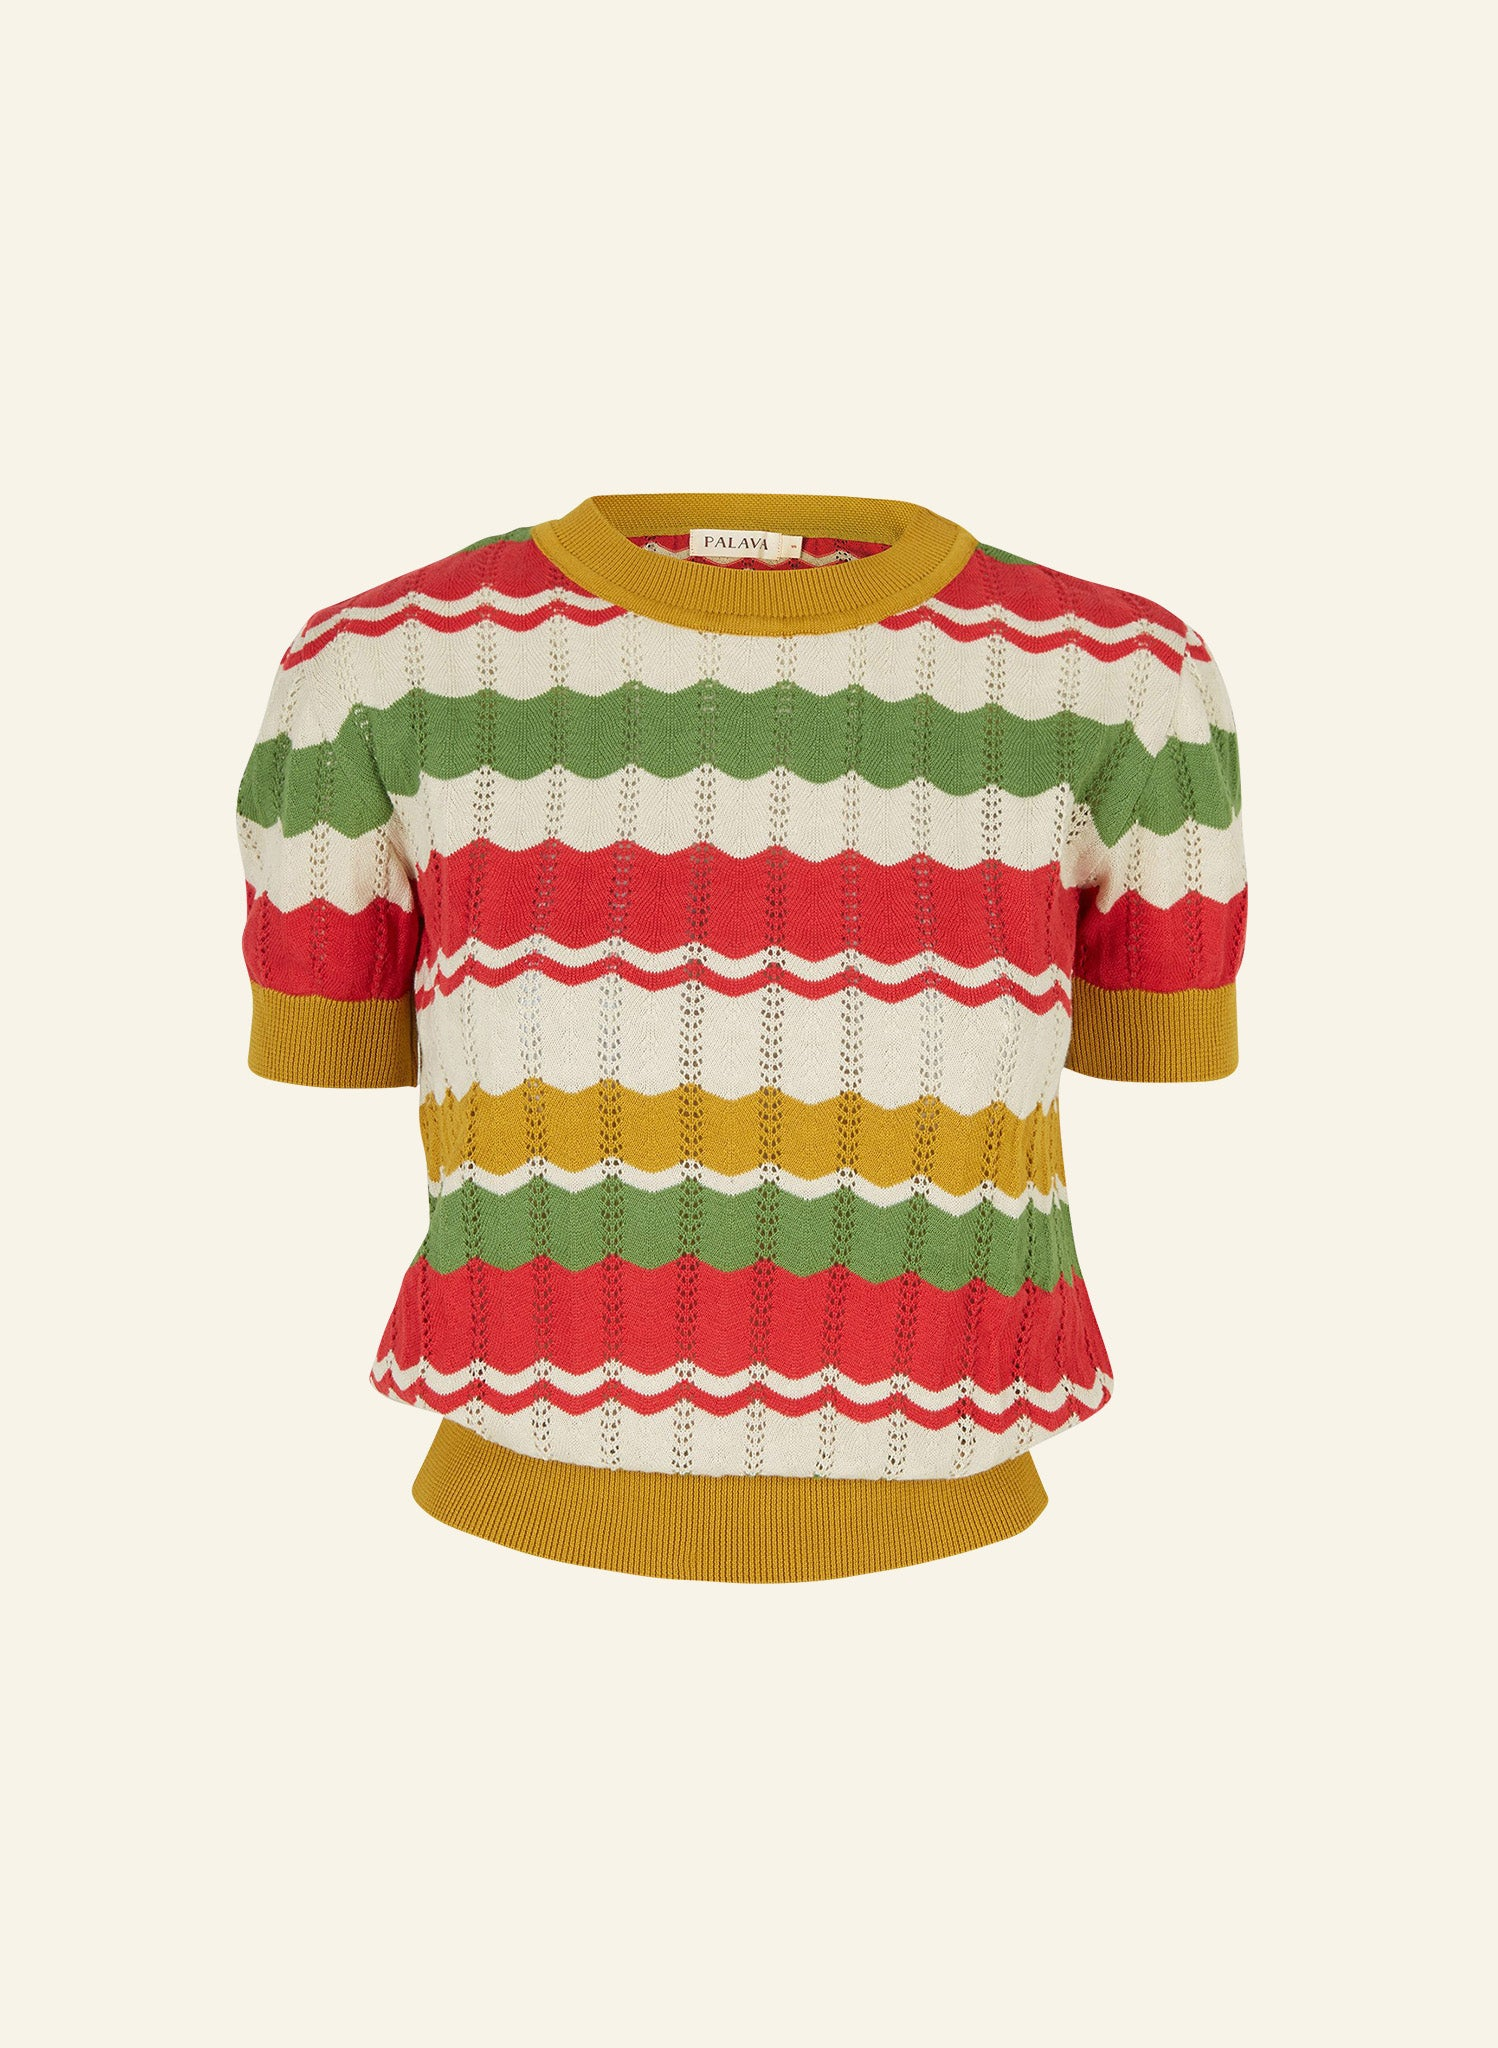 Eve Zigzag Knitted Top - Red and Mustard | Organic Cotton